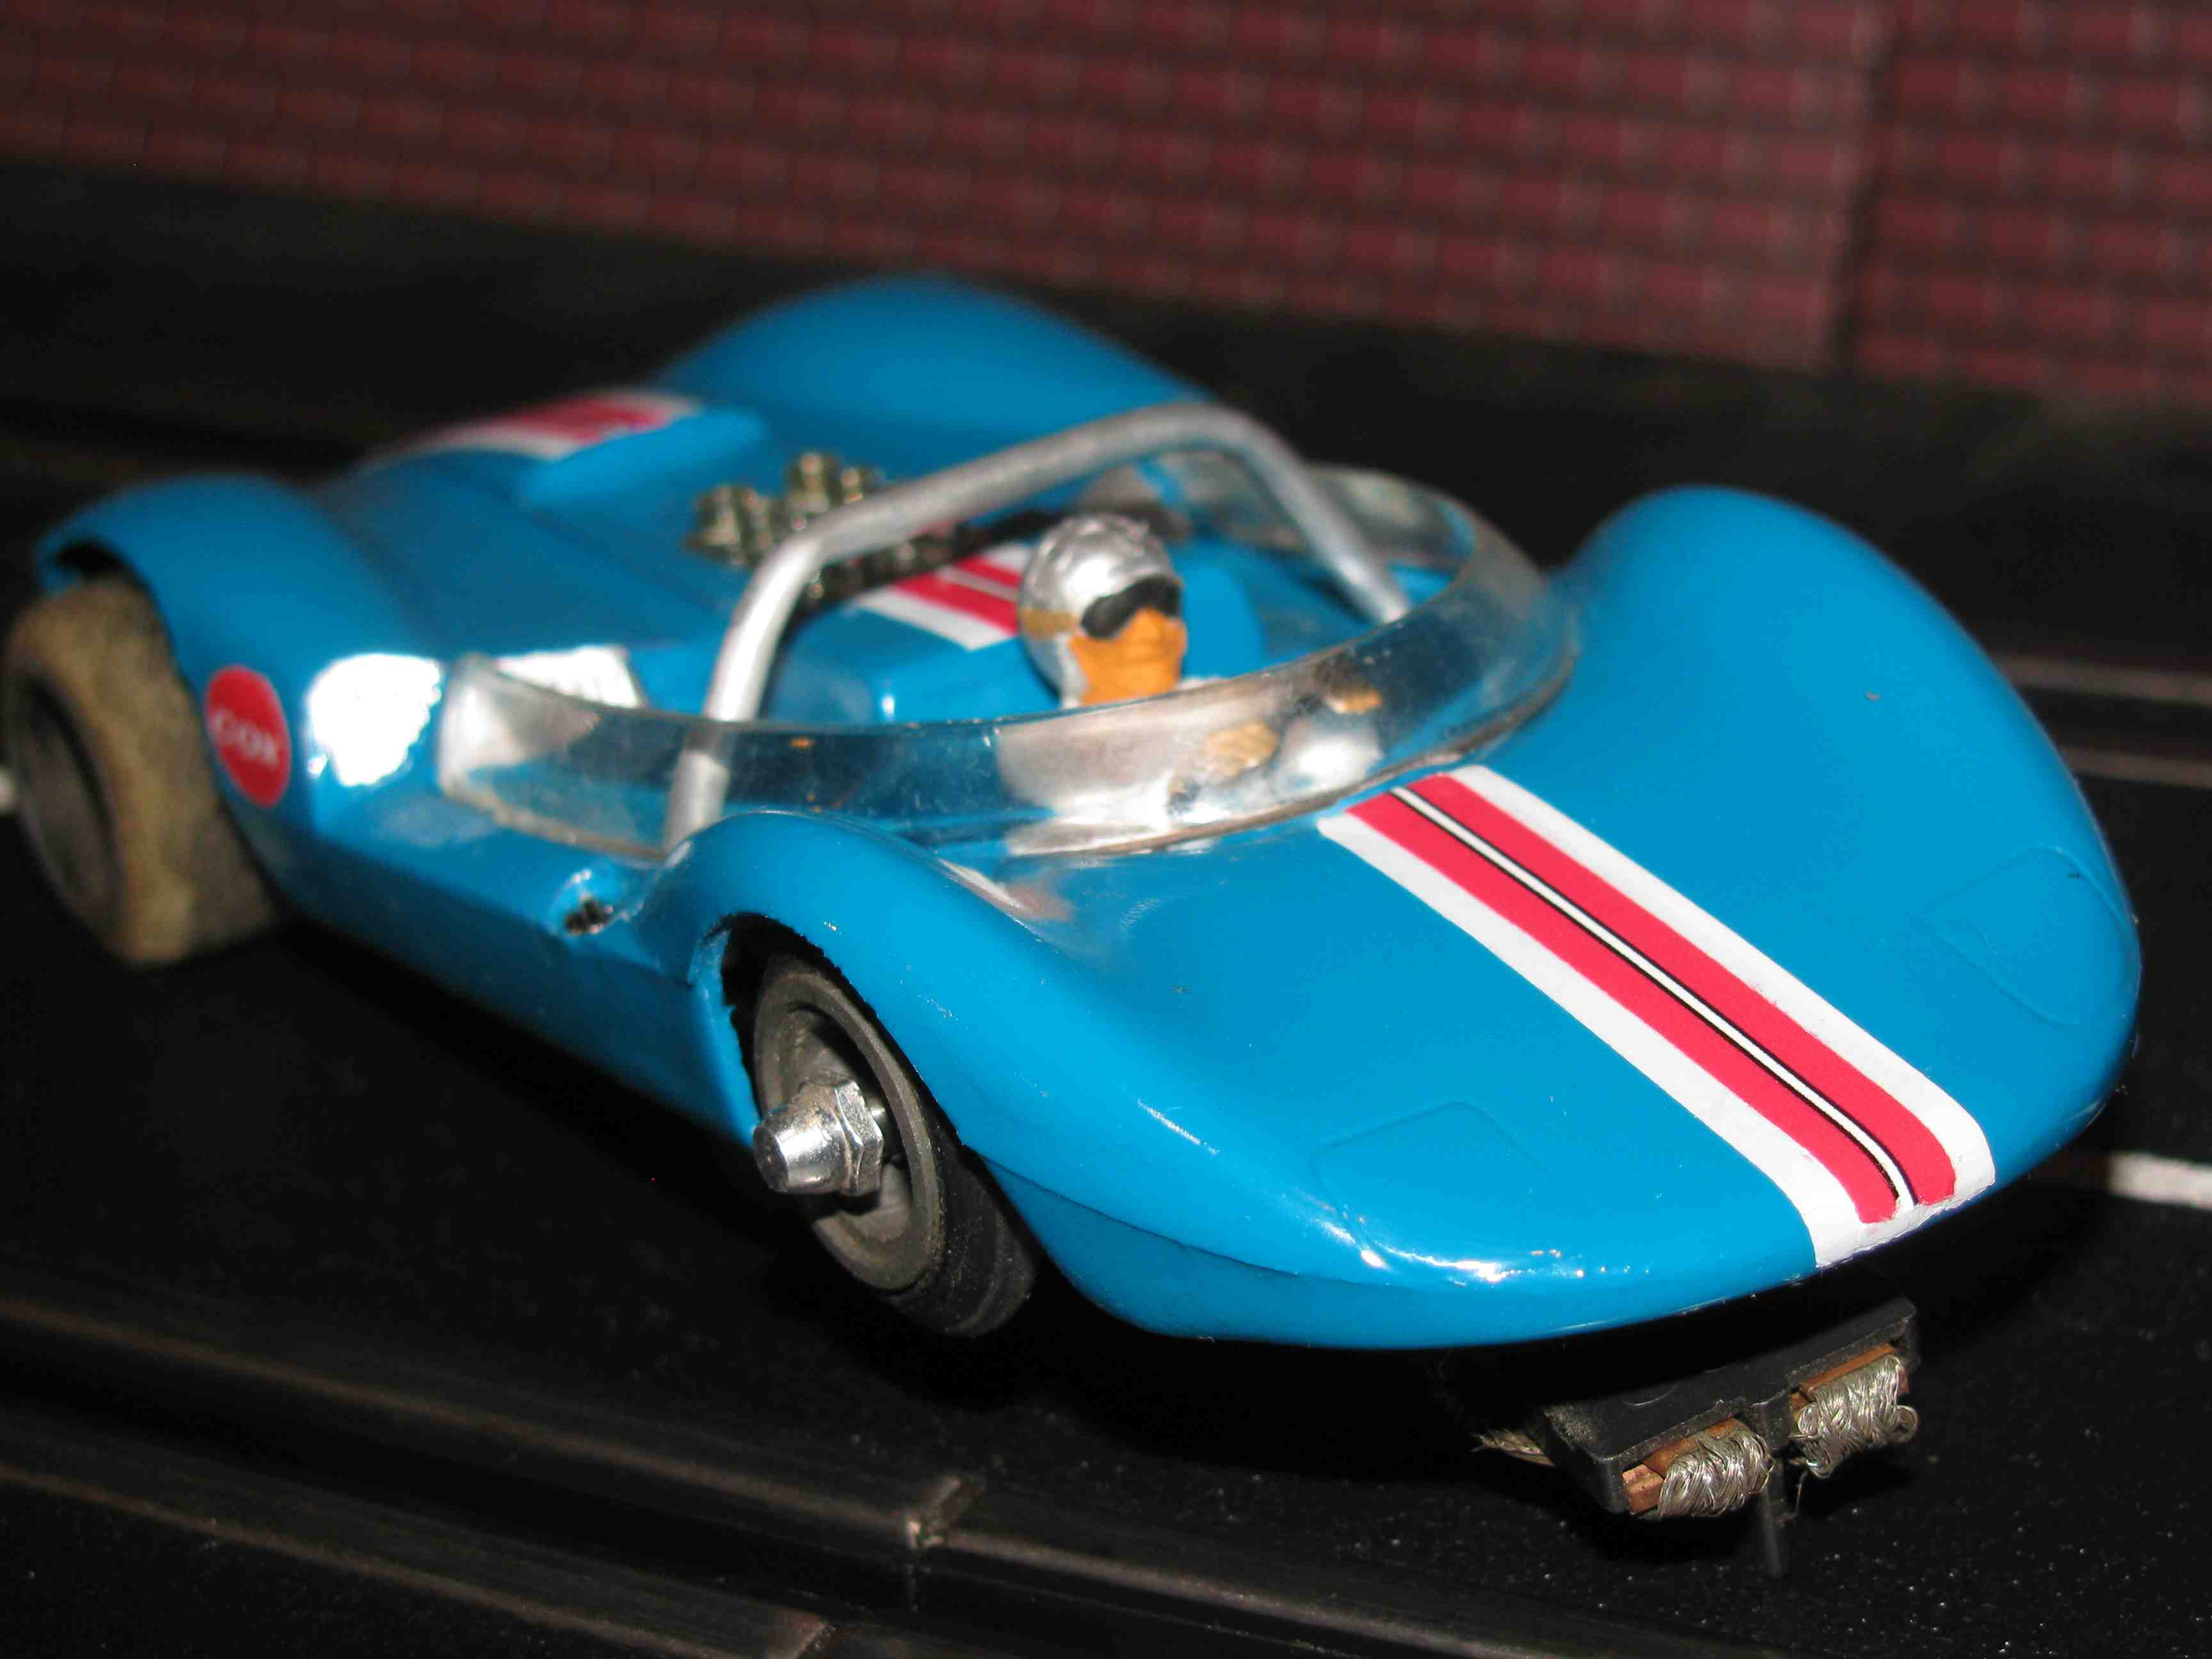 * SOLD * COX Lil Cucaracha Blue Blaster One slot car – Blue with triple Racing Strip - 1/32 Scale